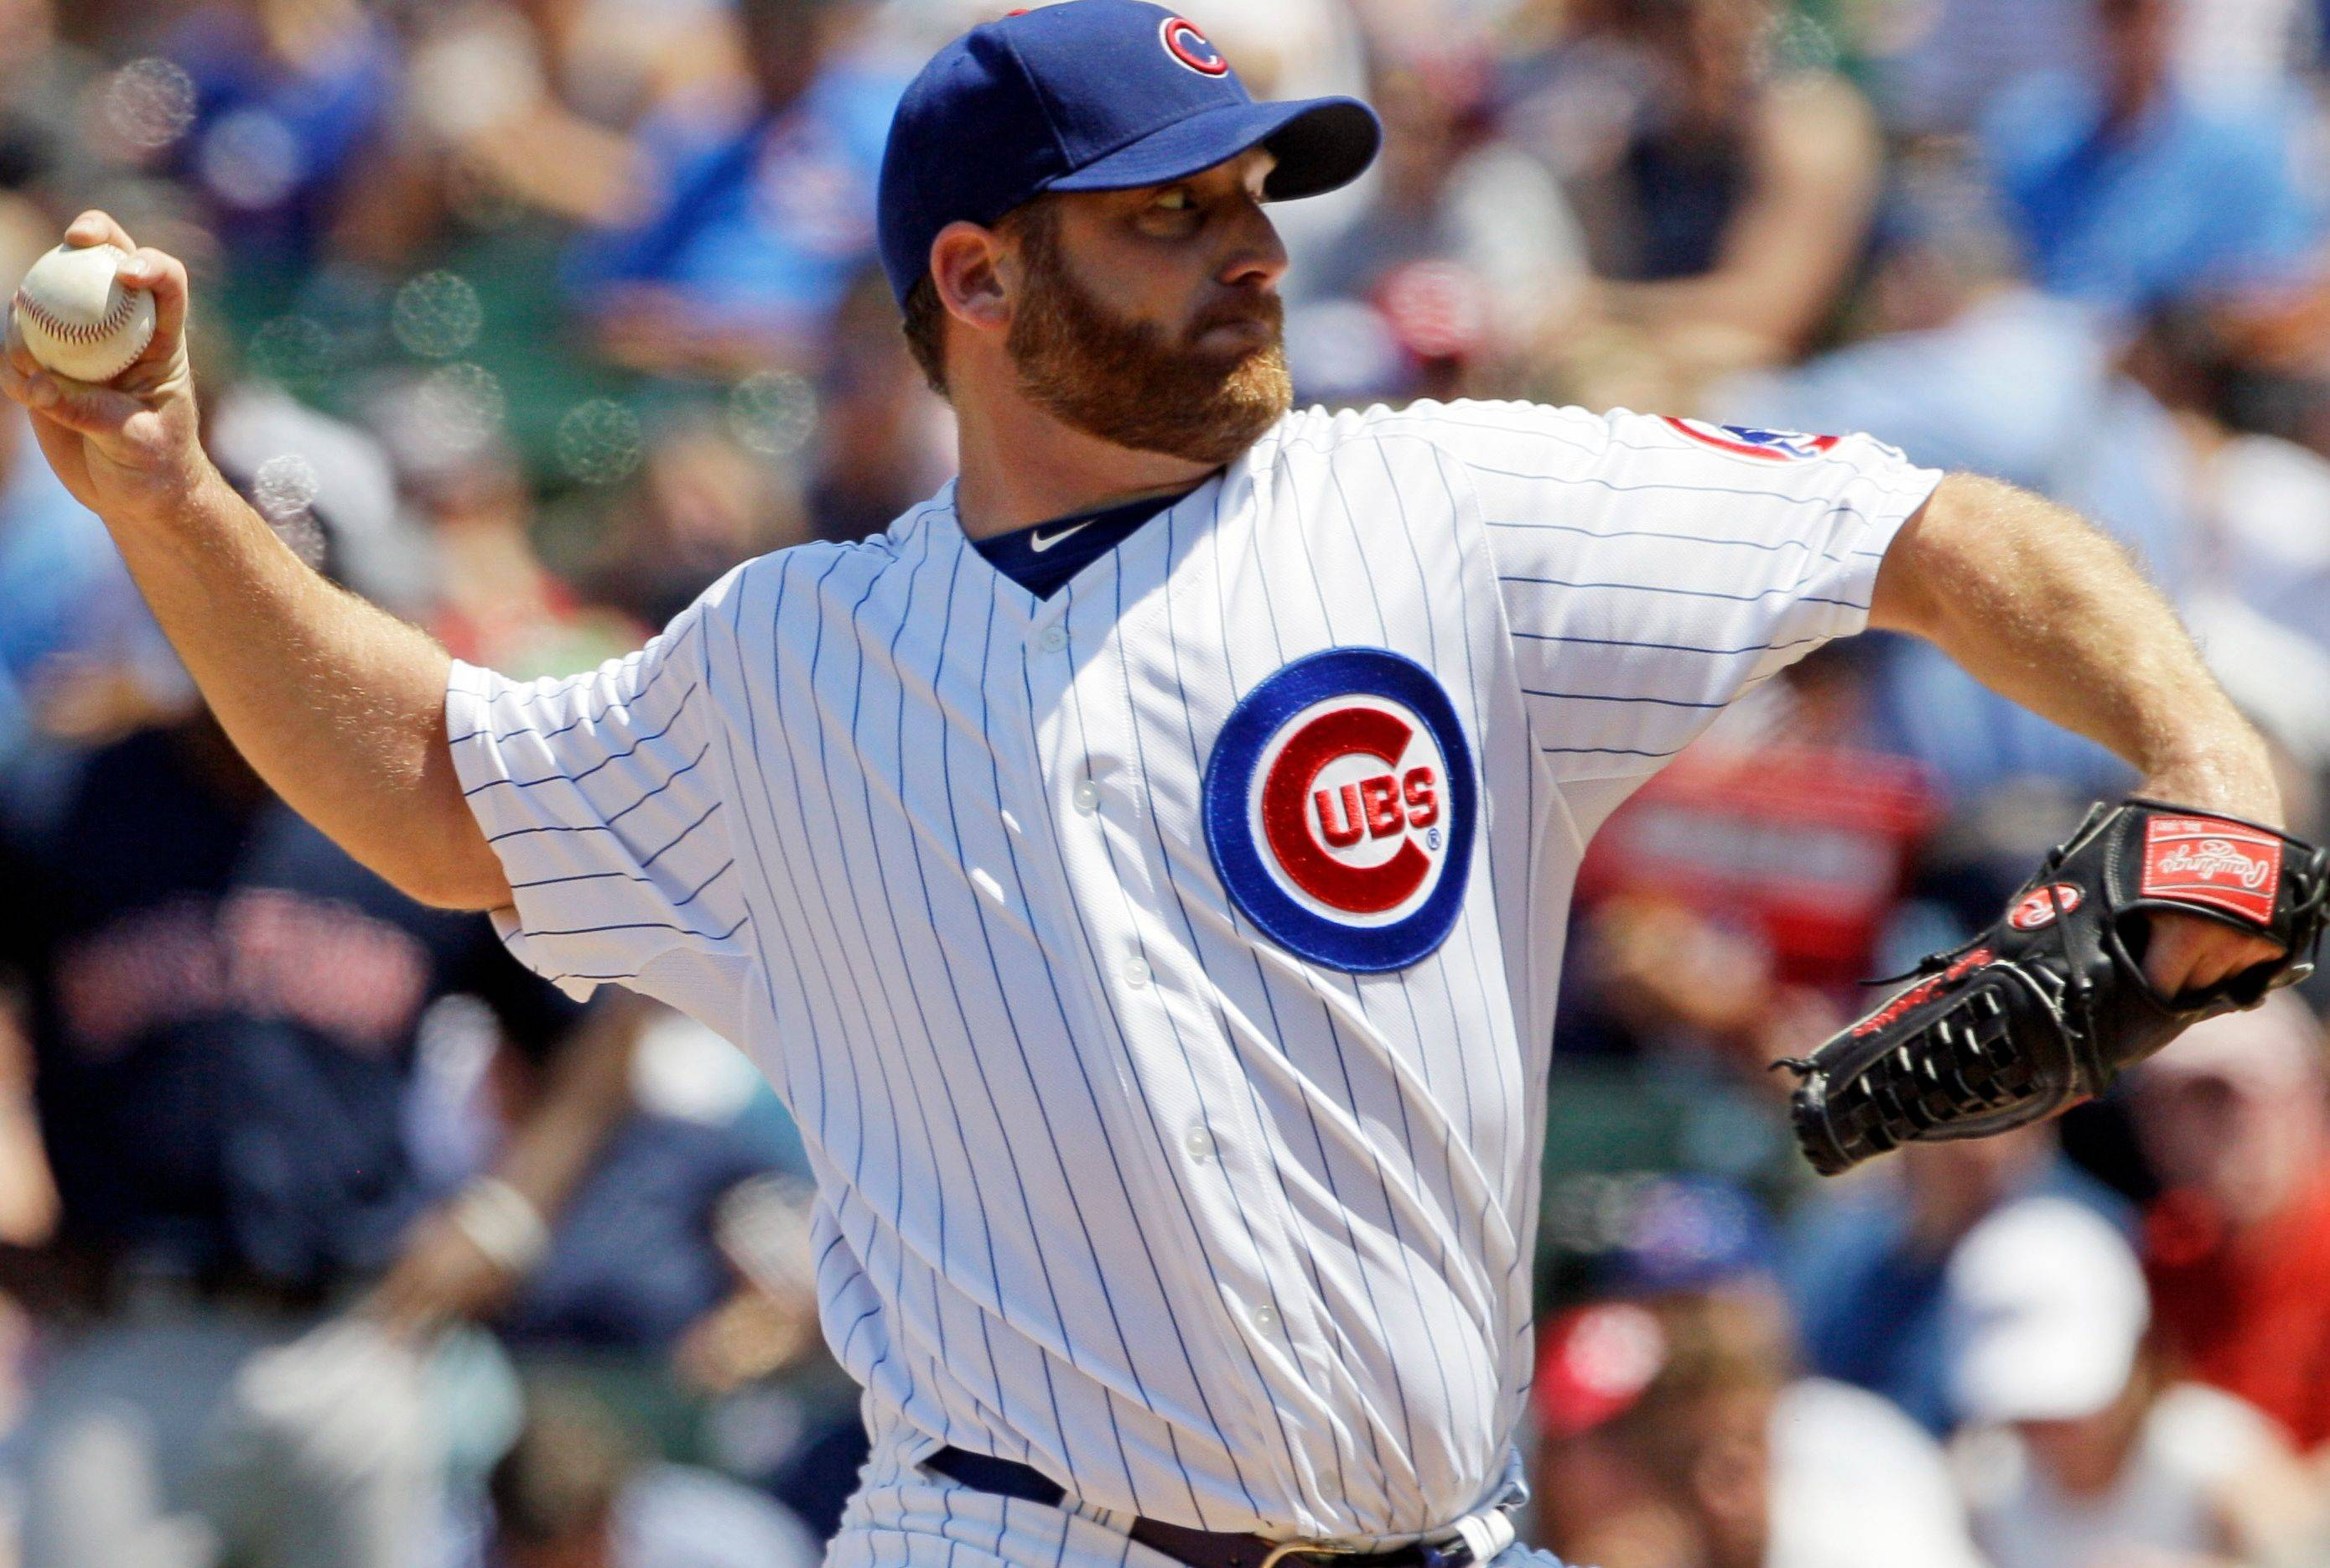 Cubs starter Ryan Dempster has been placed on the 15-day disabled list with tightness near his pitching shoulder. Randy Wells will get the start Wednesday against the White Sox.